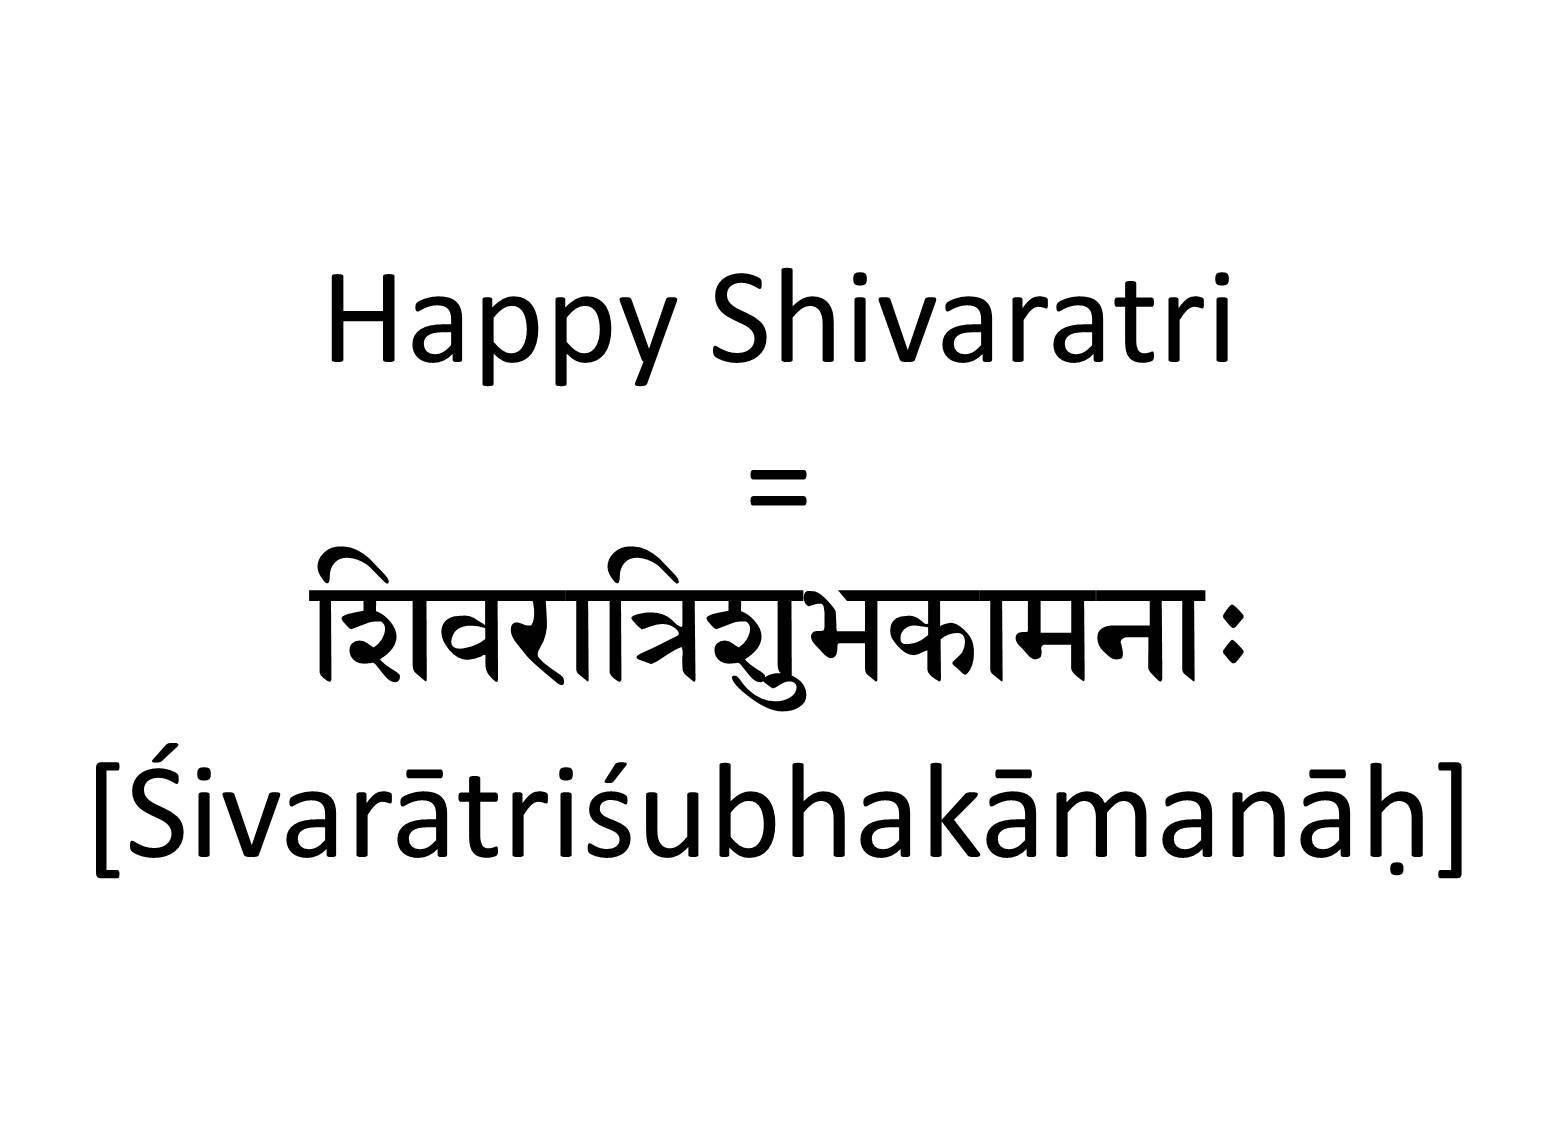 How To Say Happy Shivaratri In Sanskrit Sanskrit Tattoos